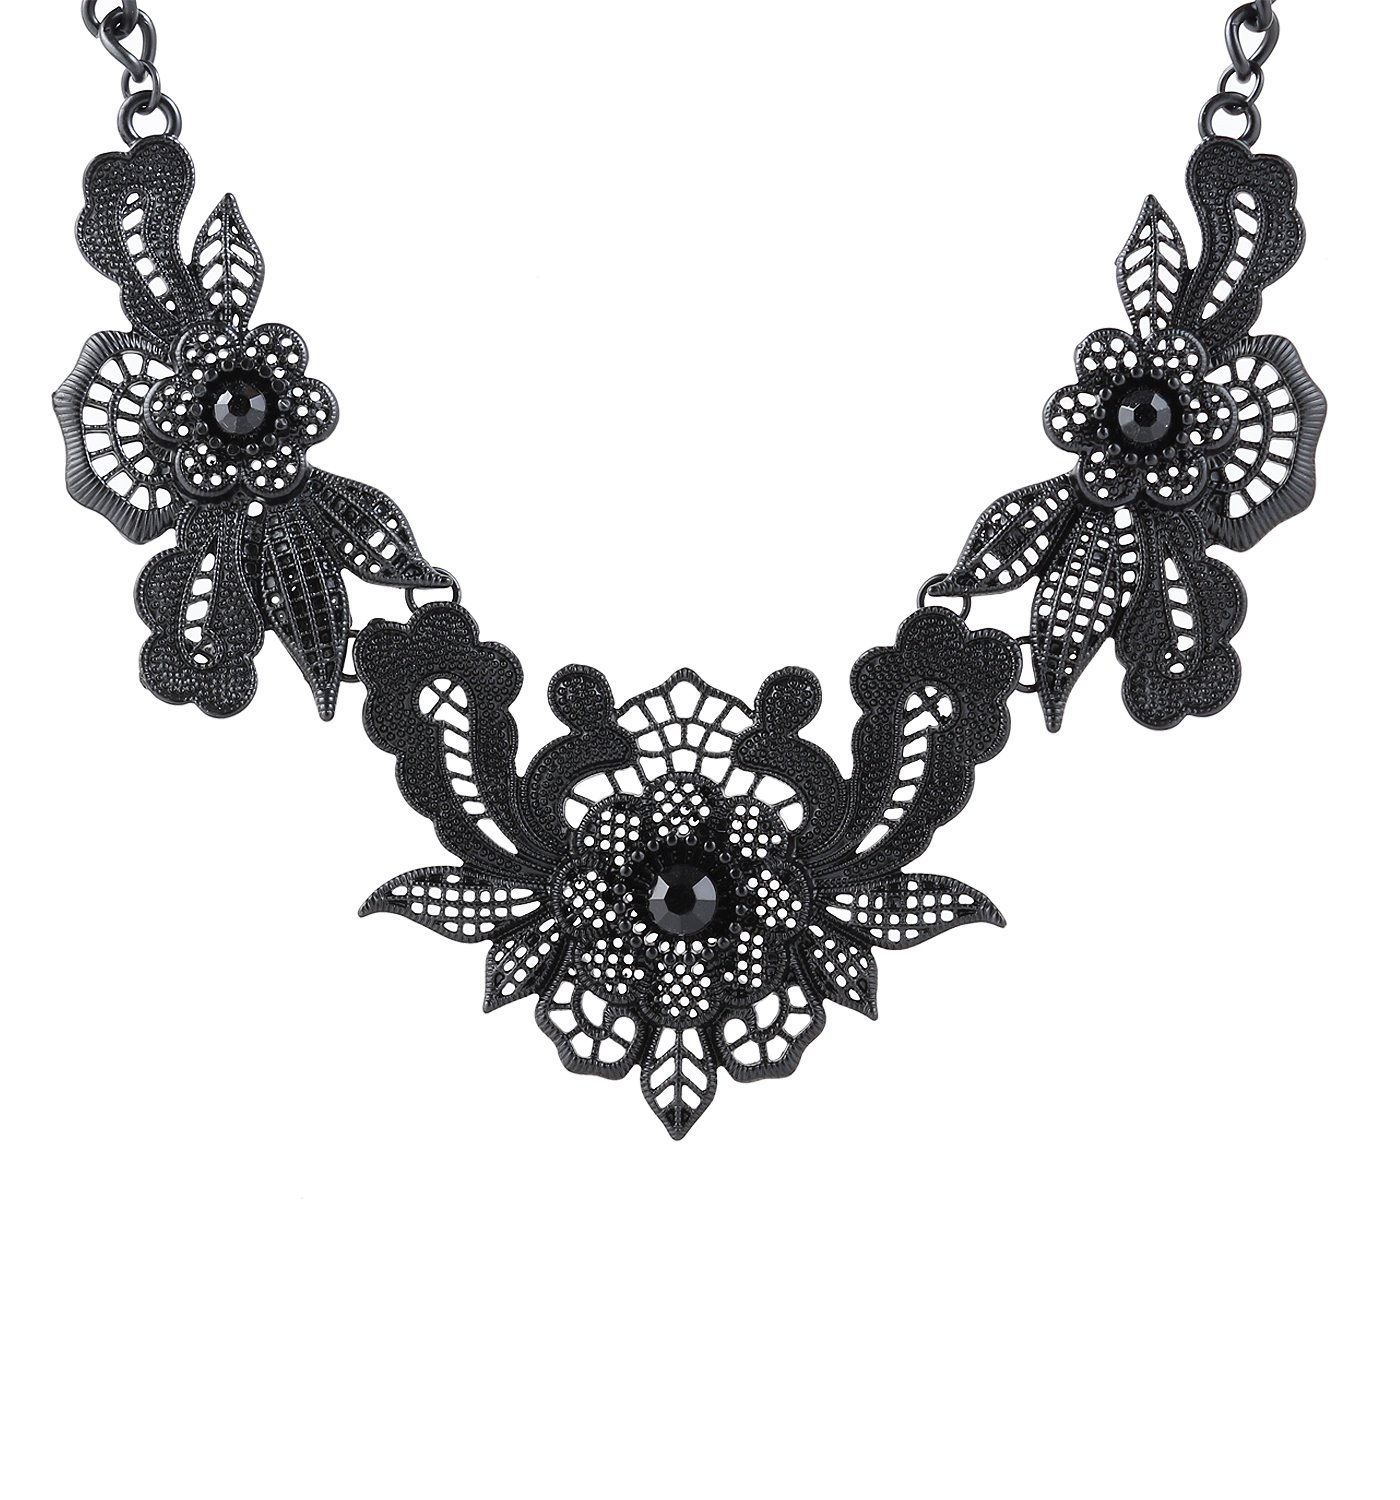 Women's Bib Collar Necklace Statement Floral Chunky Necklace (Black)